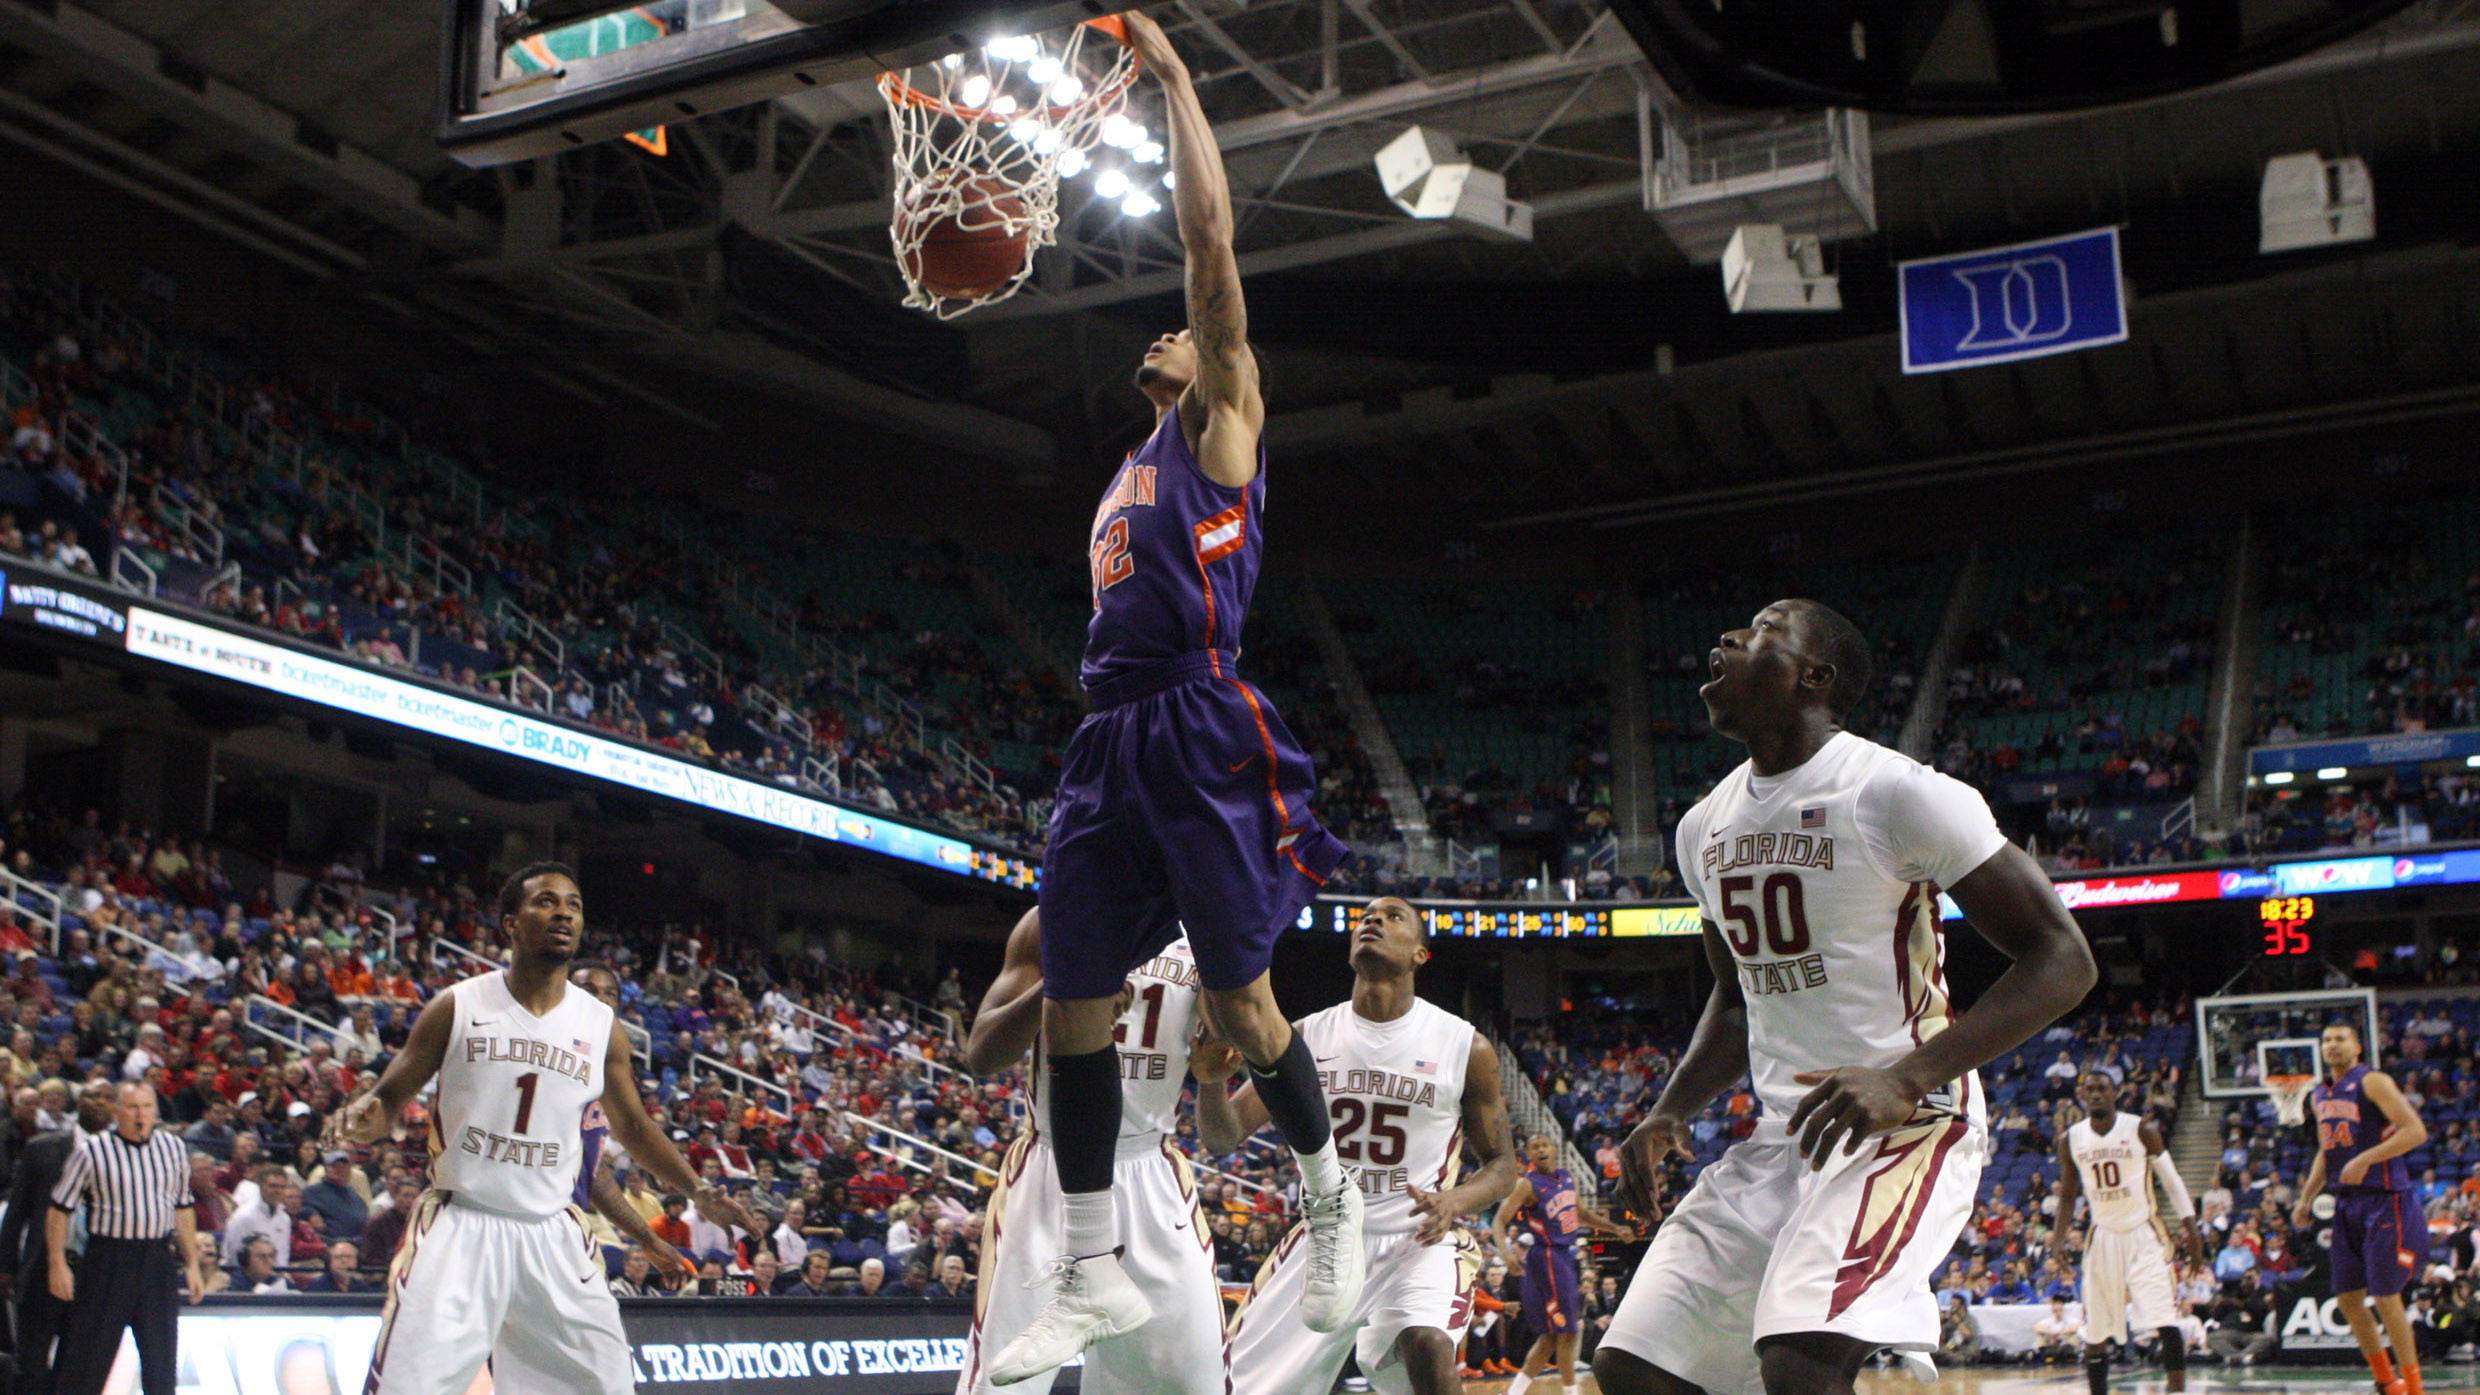 Clemson Season Ends with 73-69 Loss to Florida State in ACC Tournament